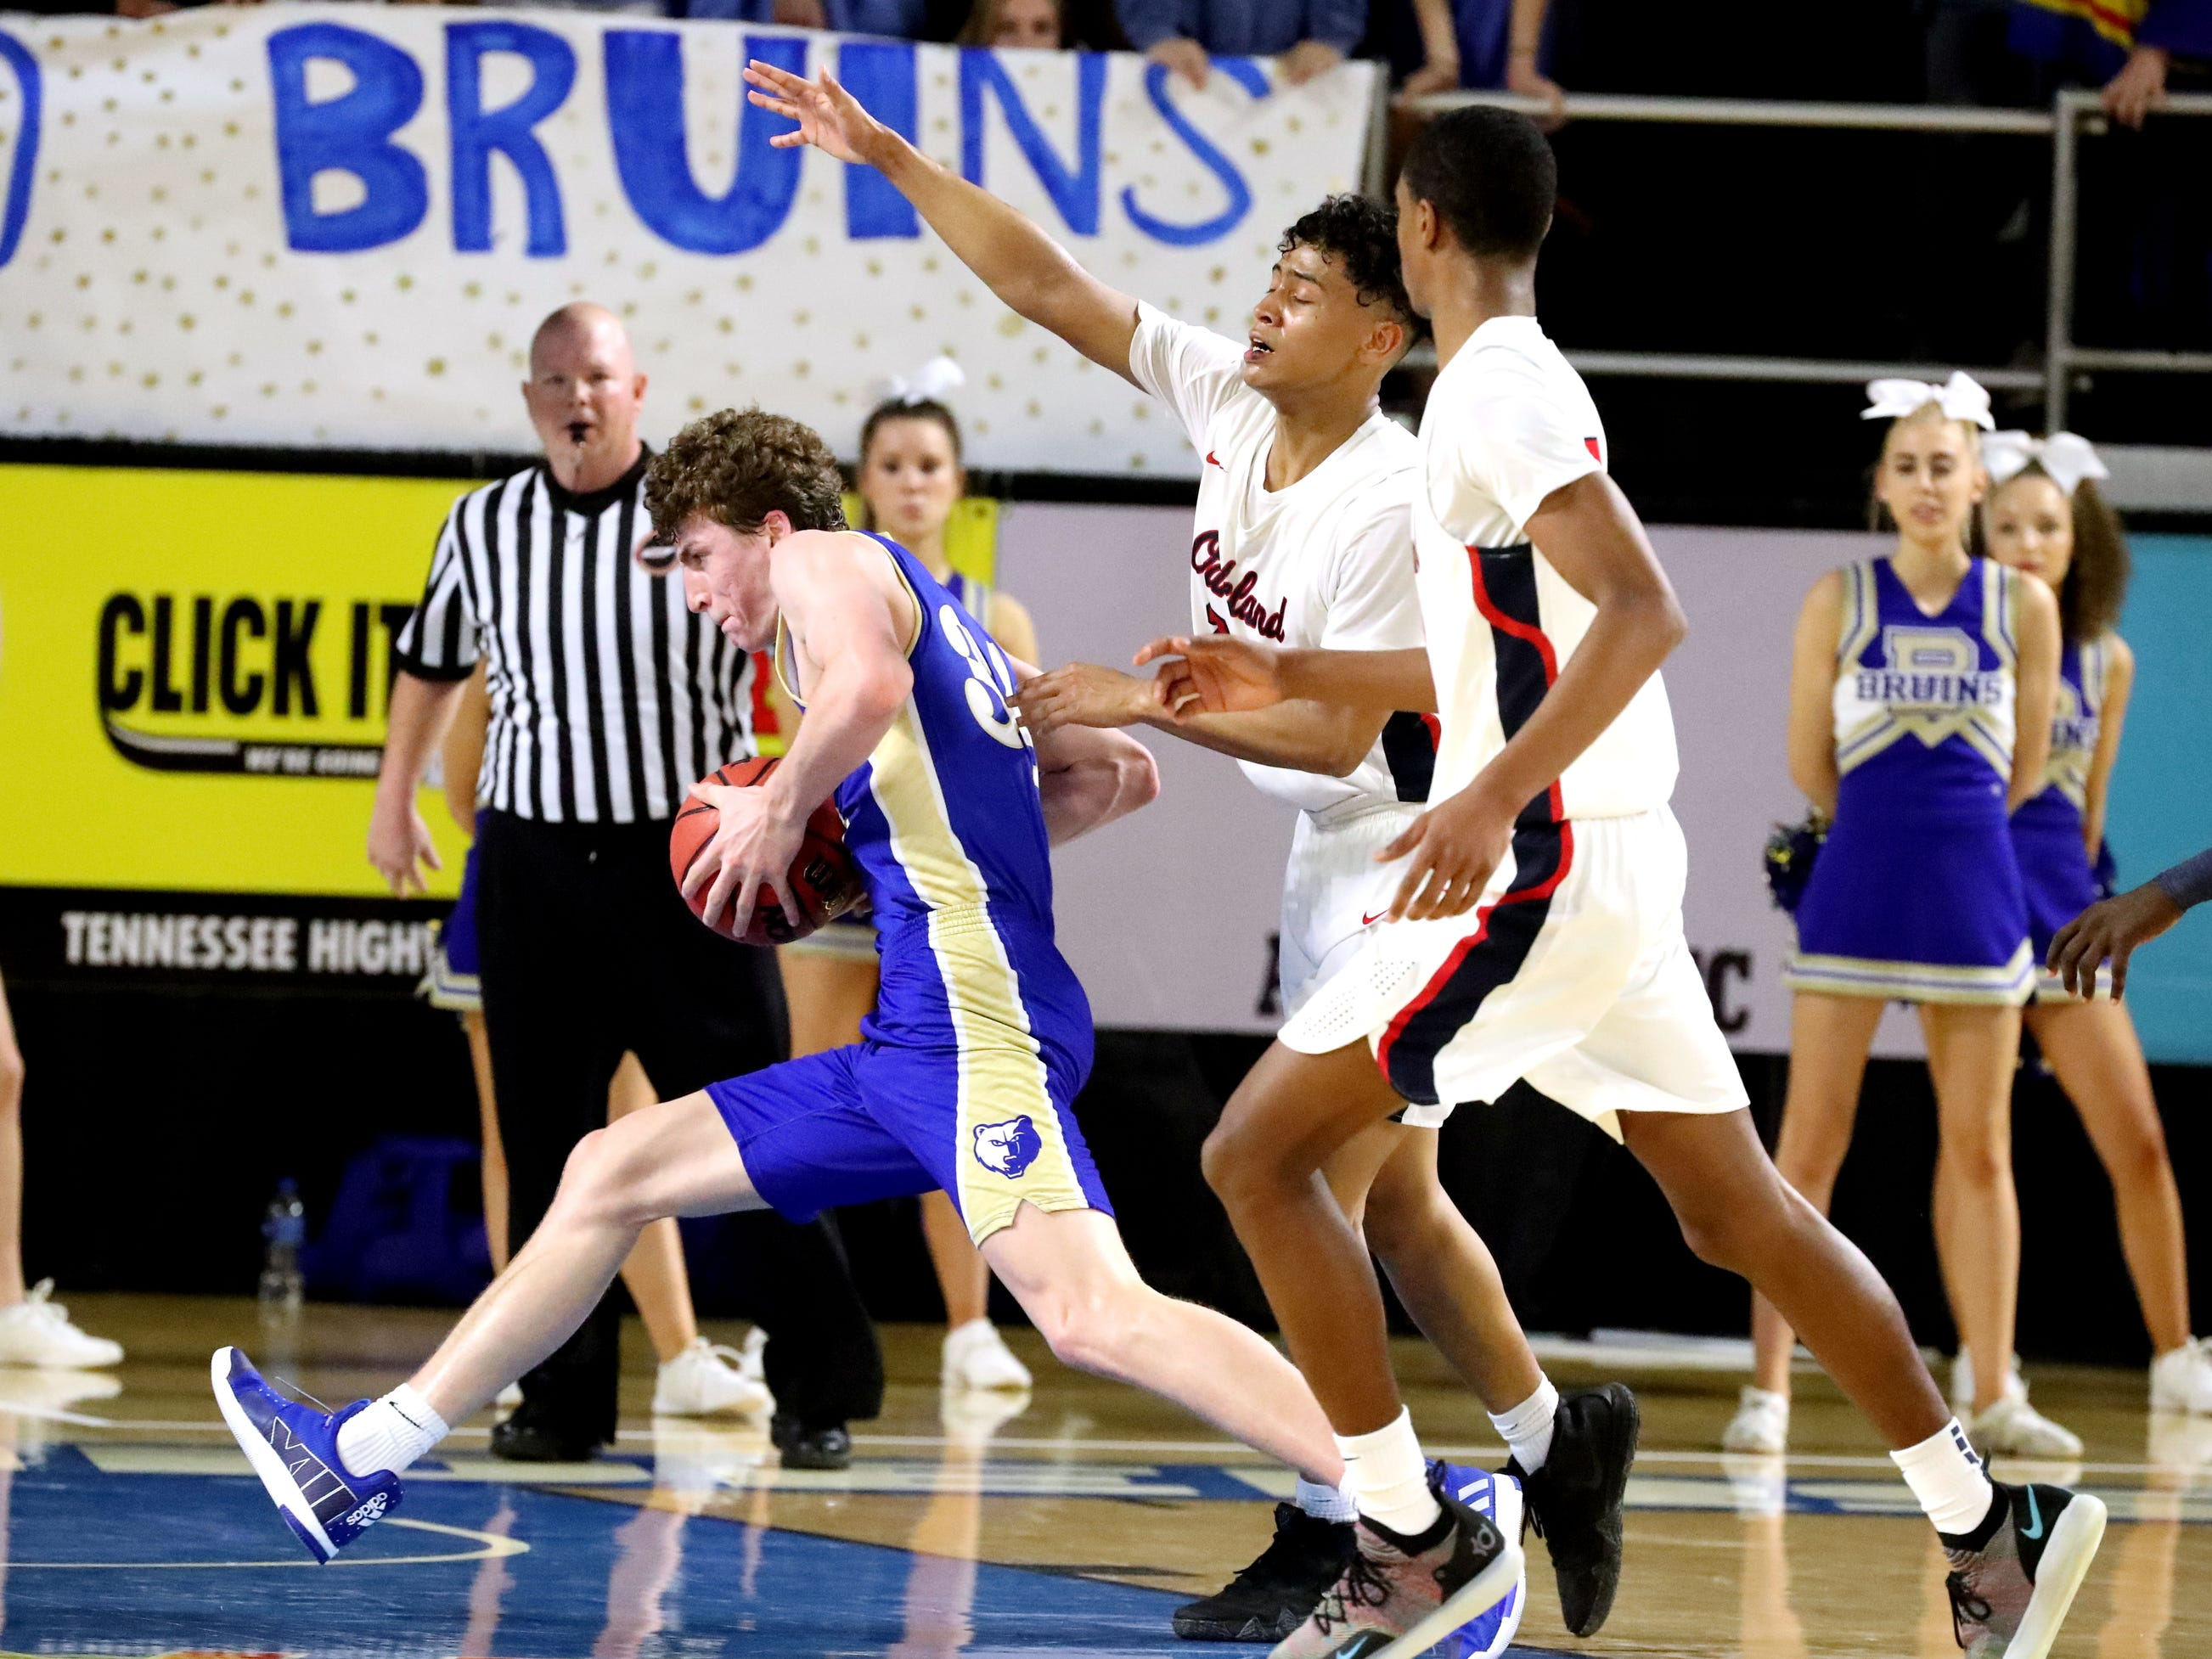 Brentwood's Ben Mills (34) drives to the basket as Oakland's Jaden Jamison (24) and Oakland's Dorian Anderson (23) guards him during the quarterfinal round of the TSSAA Class AAA Boys State Tournament, on Thursday, March 14, 2019, at Murphy Center in Murfreesboro, Tenn.